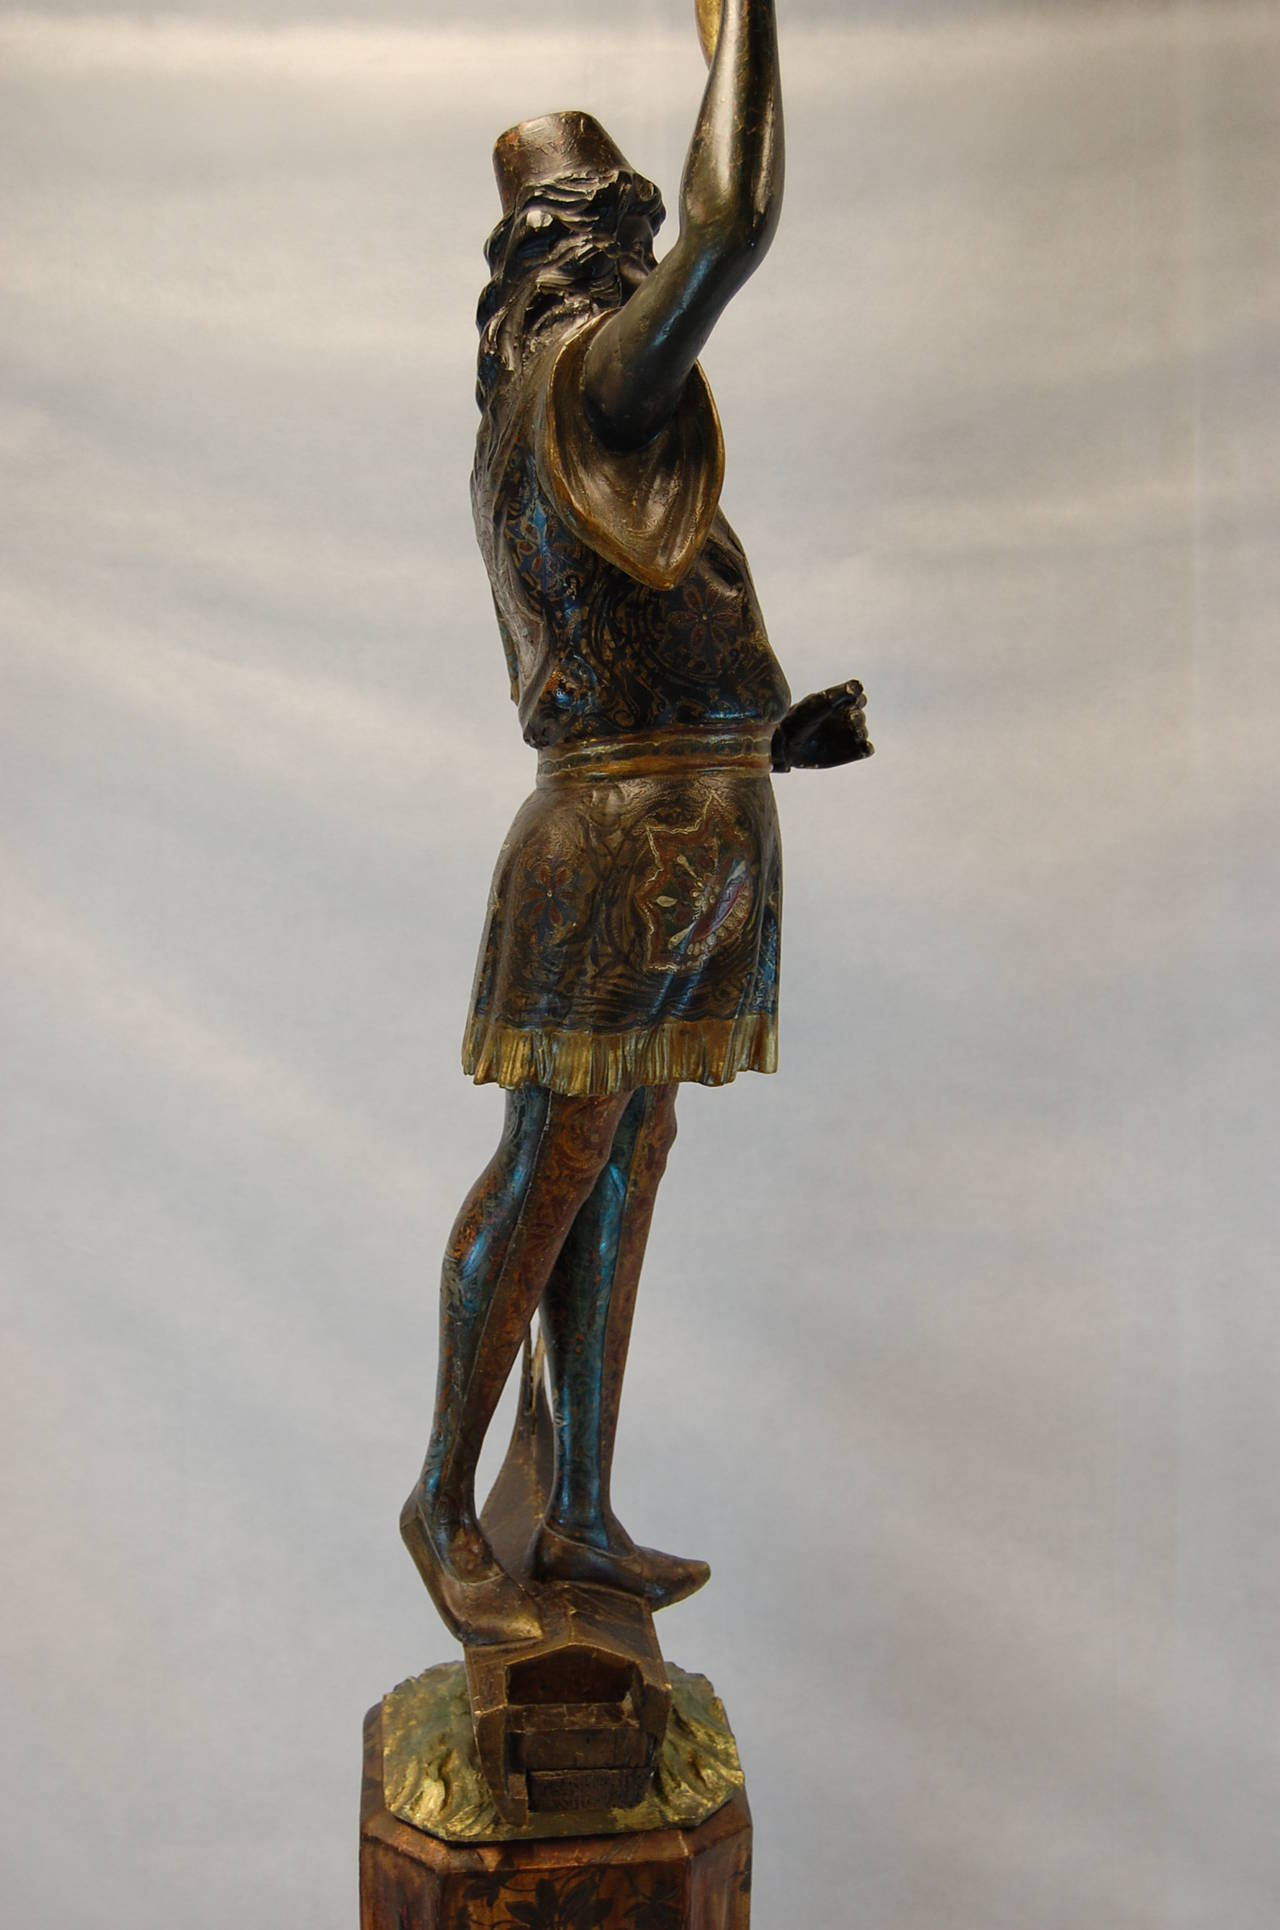 Hand-Carved 19th Century Carved and Polychromed Venetian Figure on Gondola Base For Sale